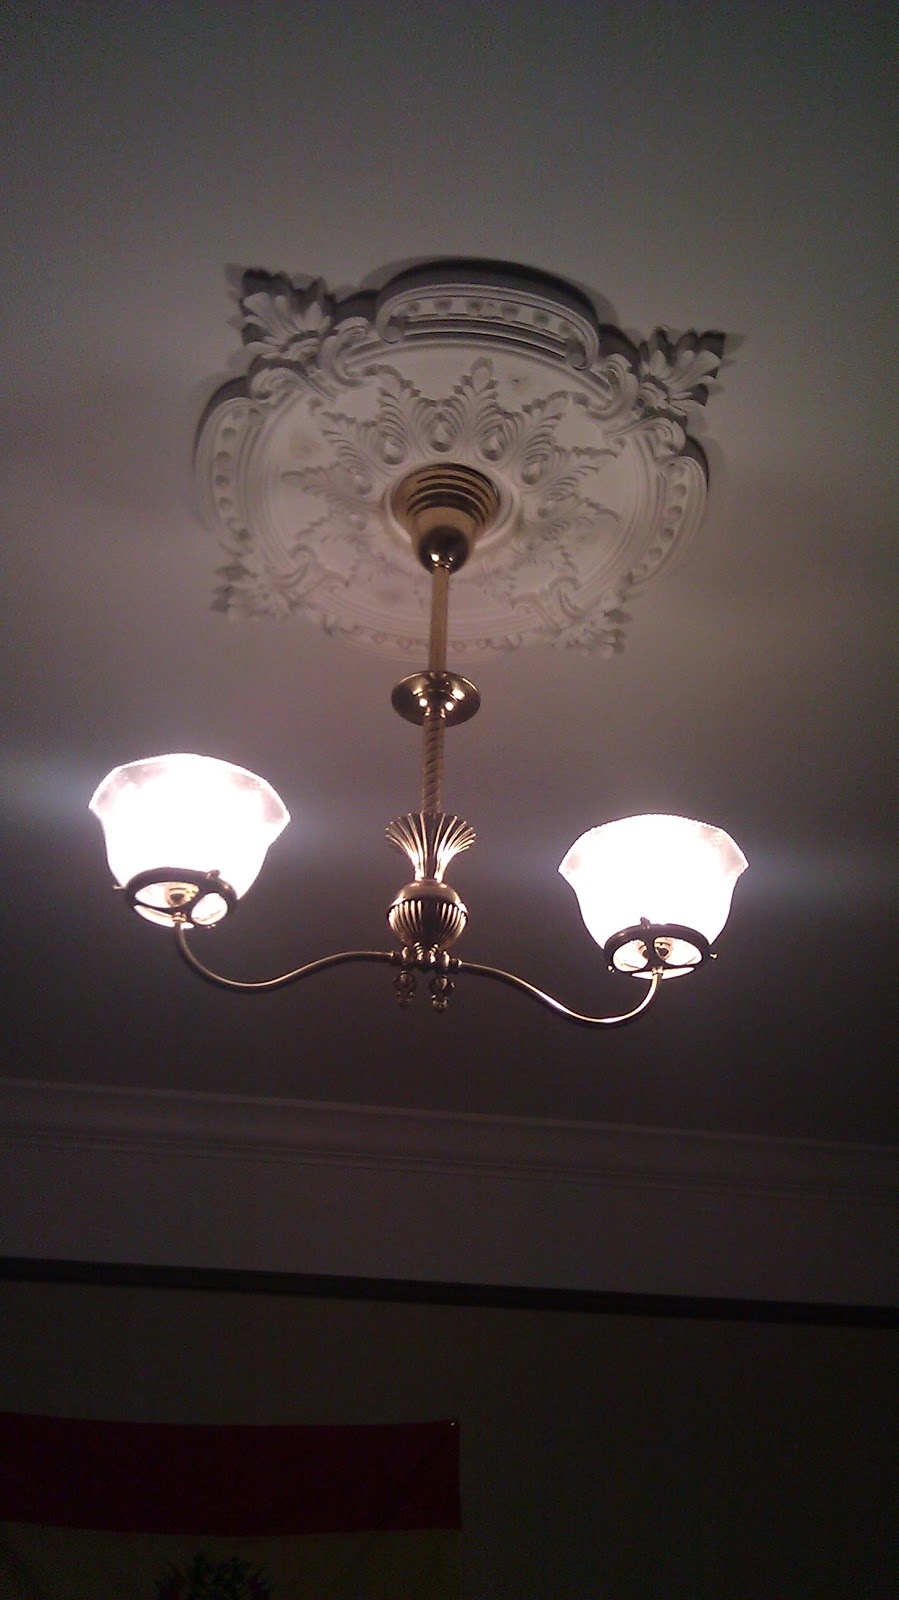 Here is one for the master bedroom simple but gives generous light and a good look i think i like this medallion better than the other one because its